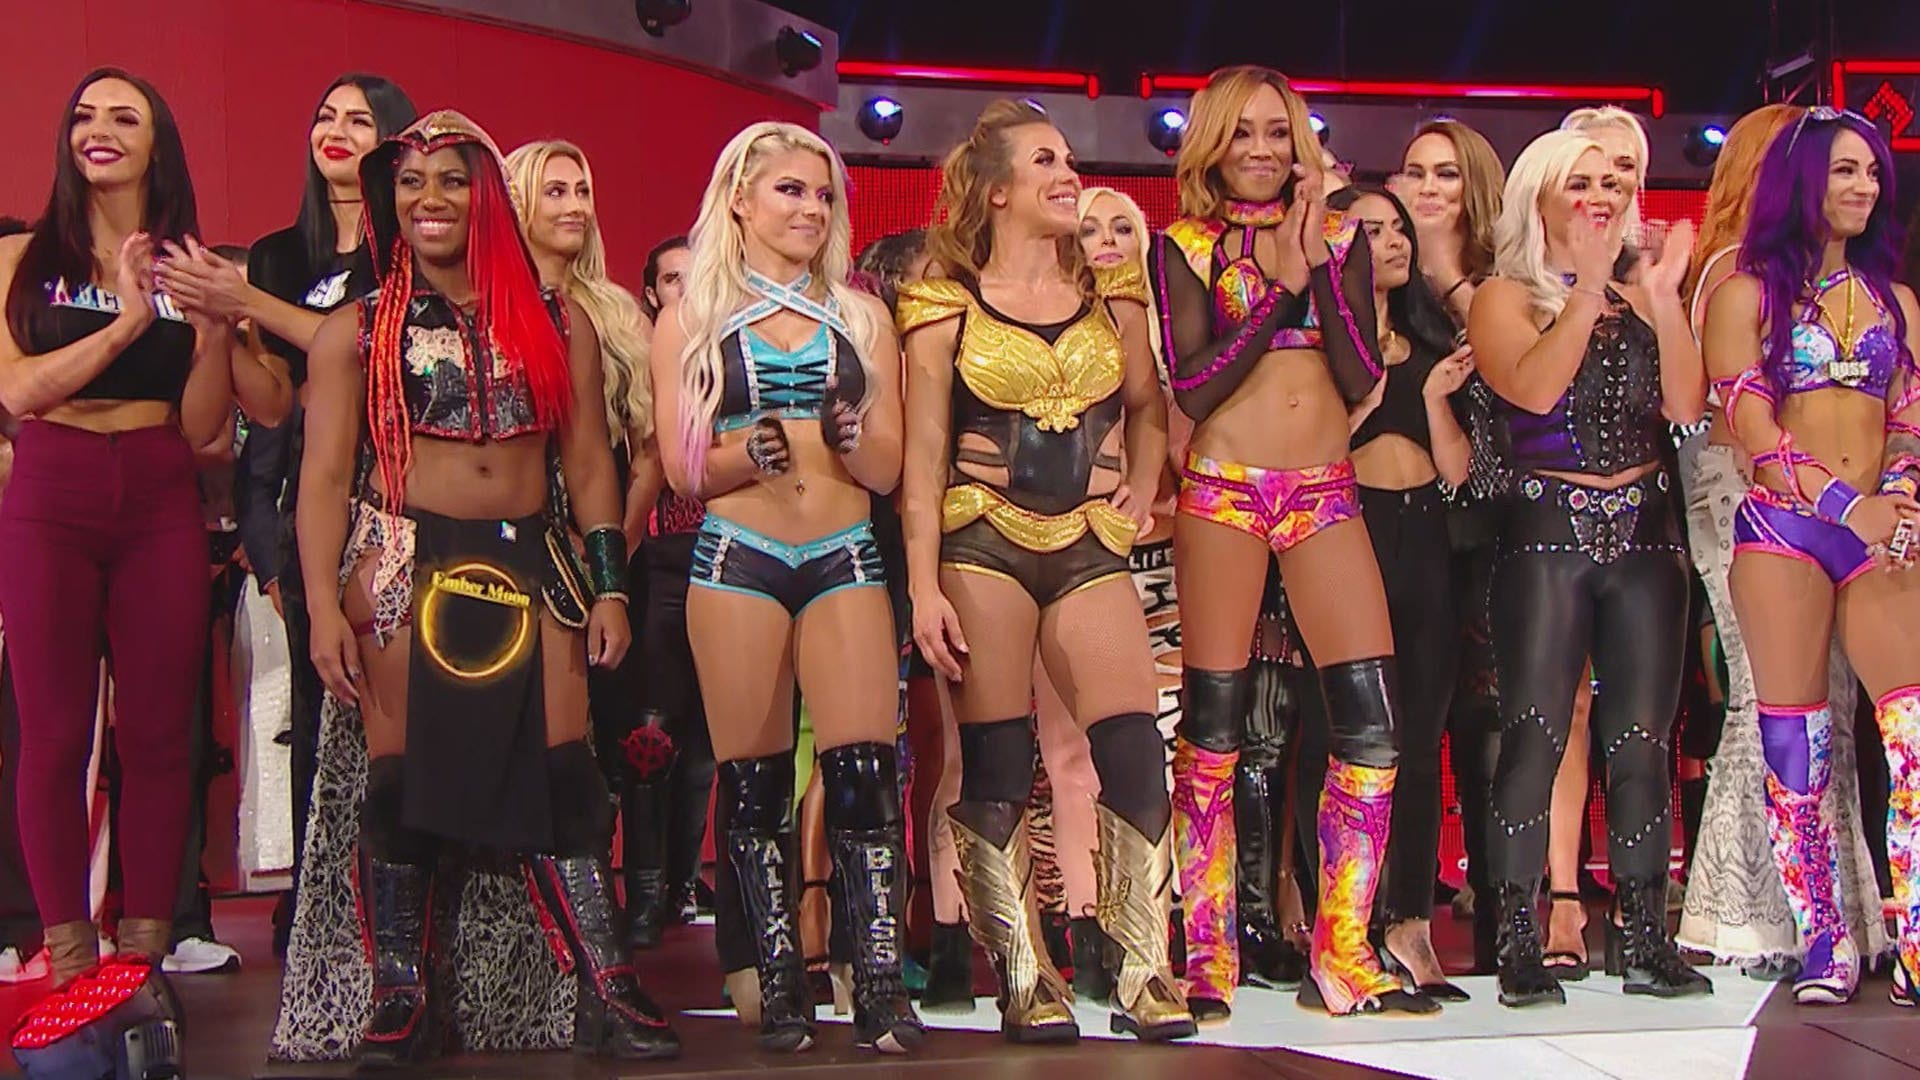 raw-commissioner-stephanie-mcmahon-and-triple-h-announced-the-first-ever-womens-pay-per-view-wwe-evolution